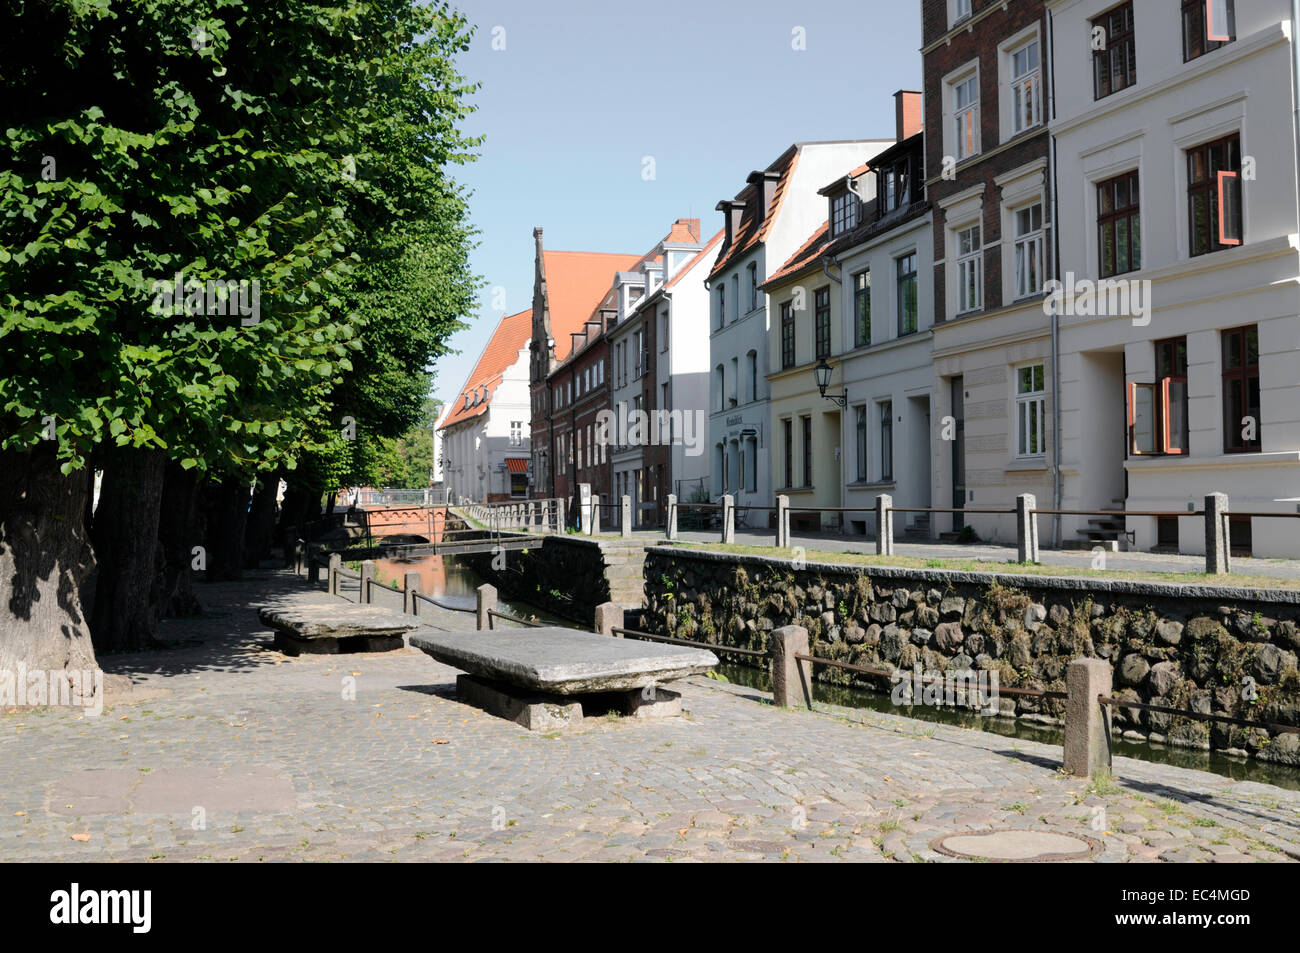 Street named Frische Grube in Wismar, Germany - Stock Image